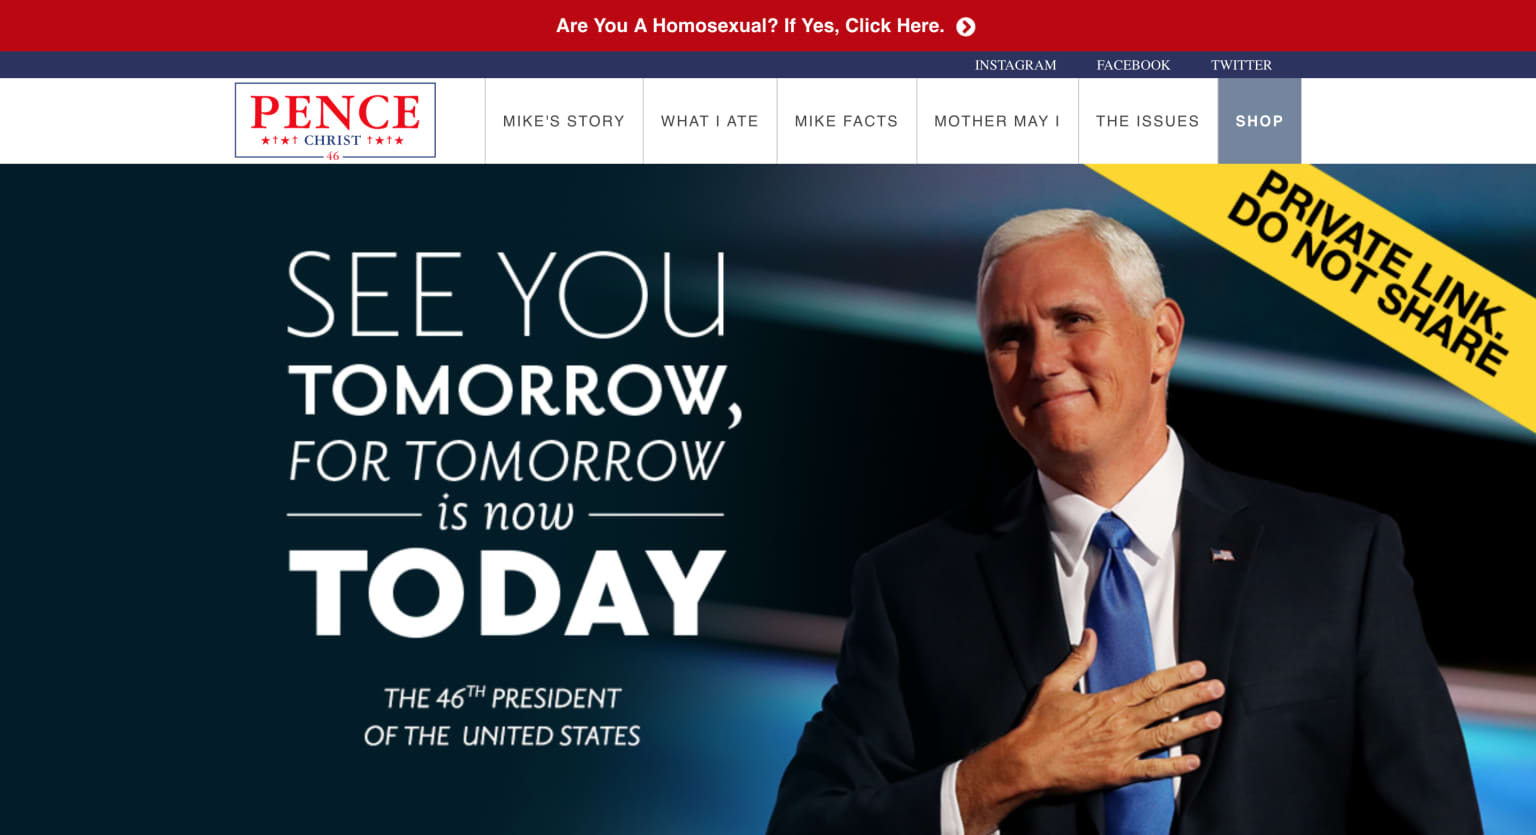 OfficialMikePence.com